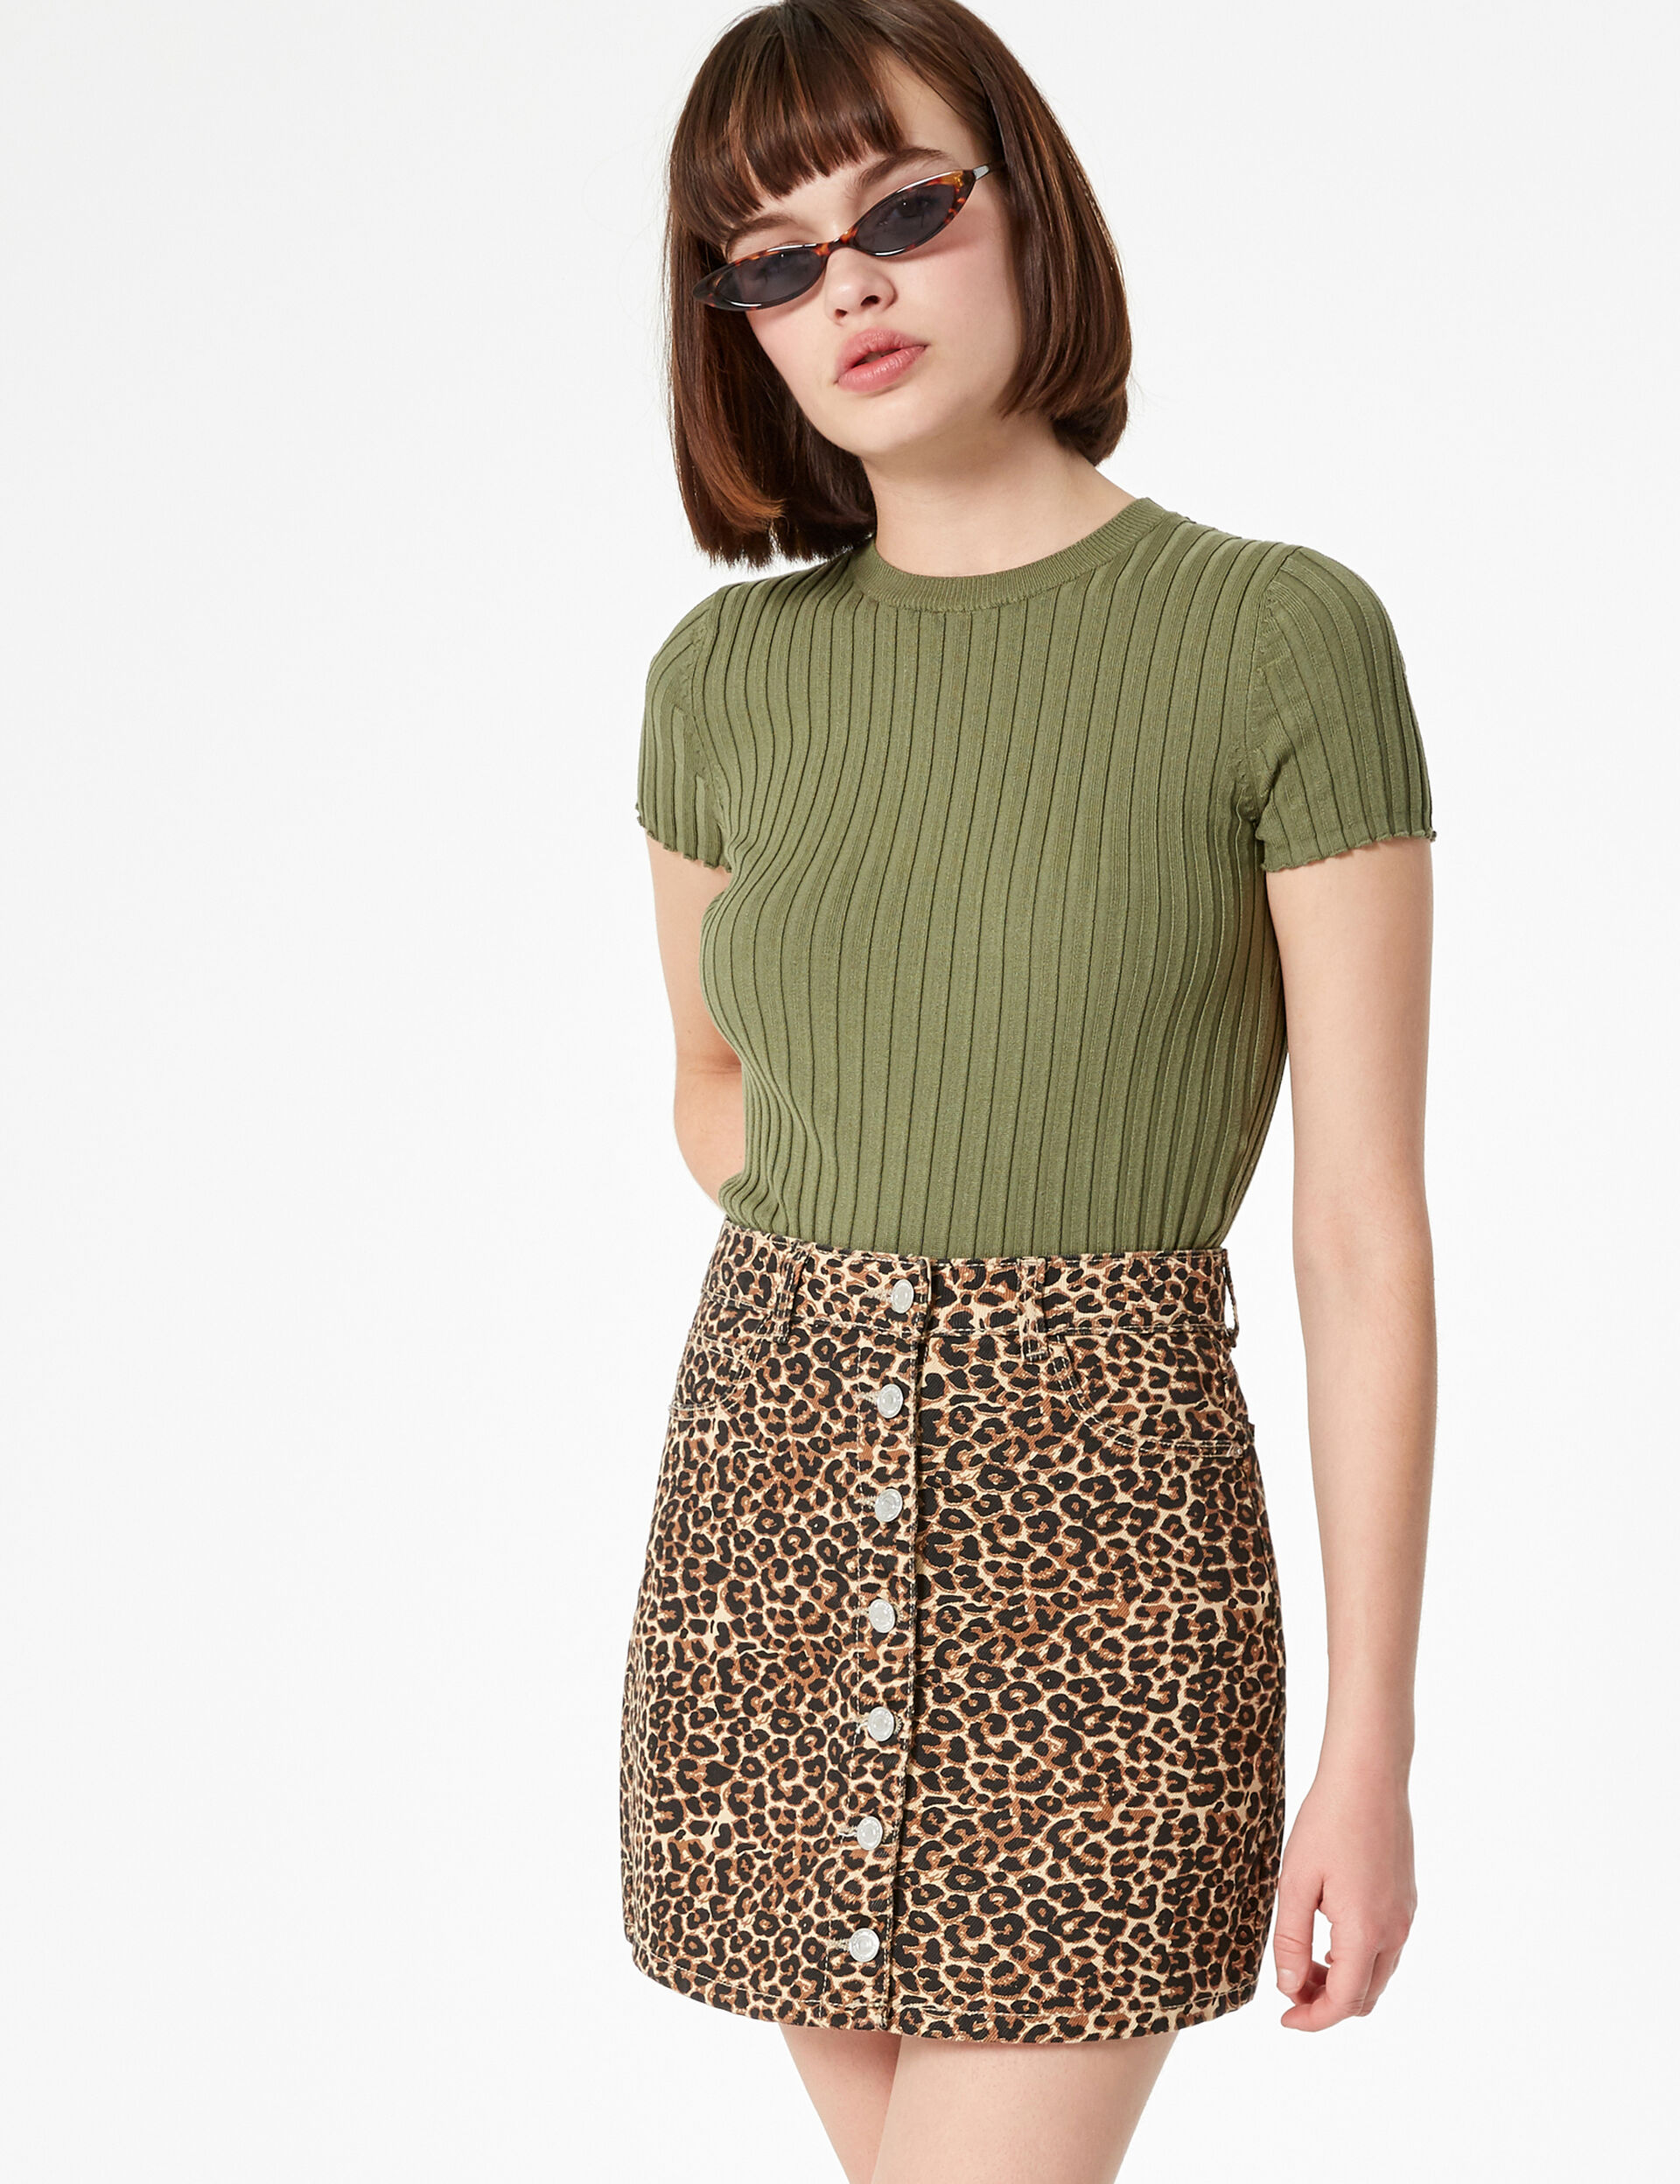 Camel and black button-up skirt with leopard print detail